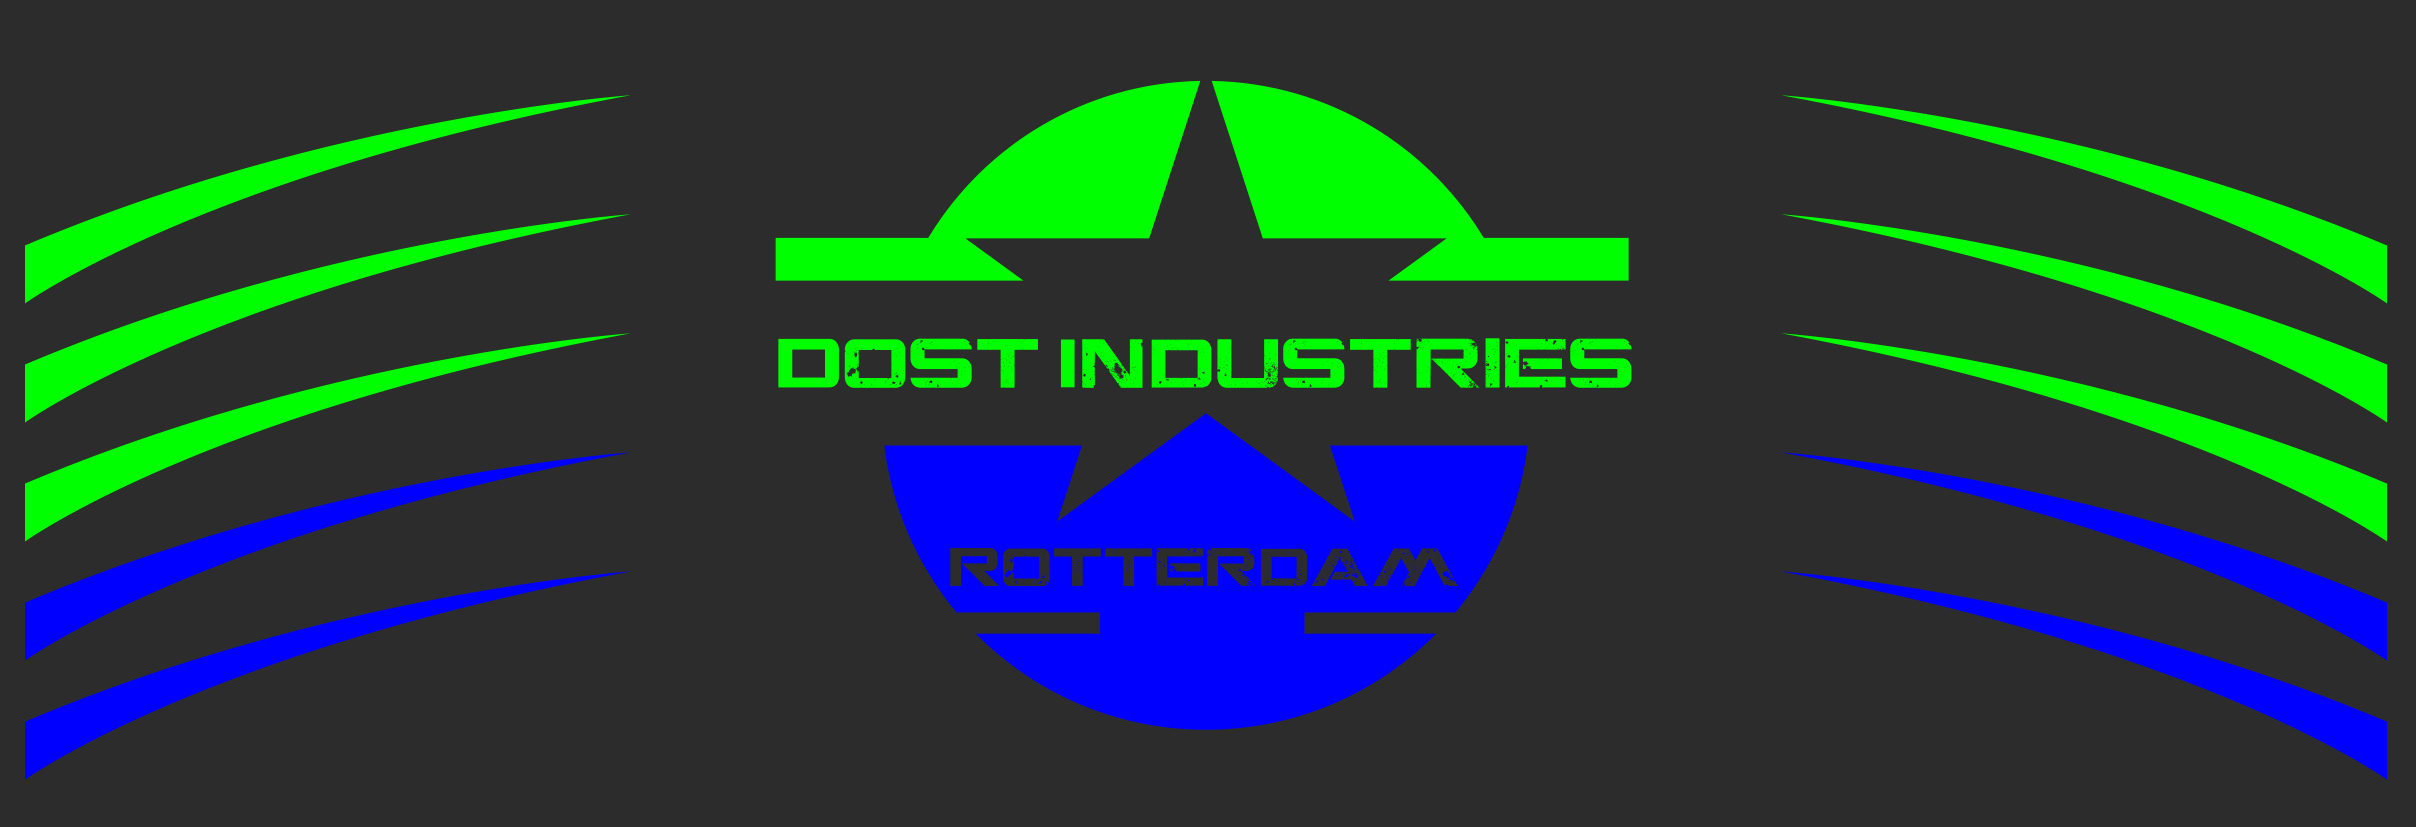 Dost Industries.com